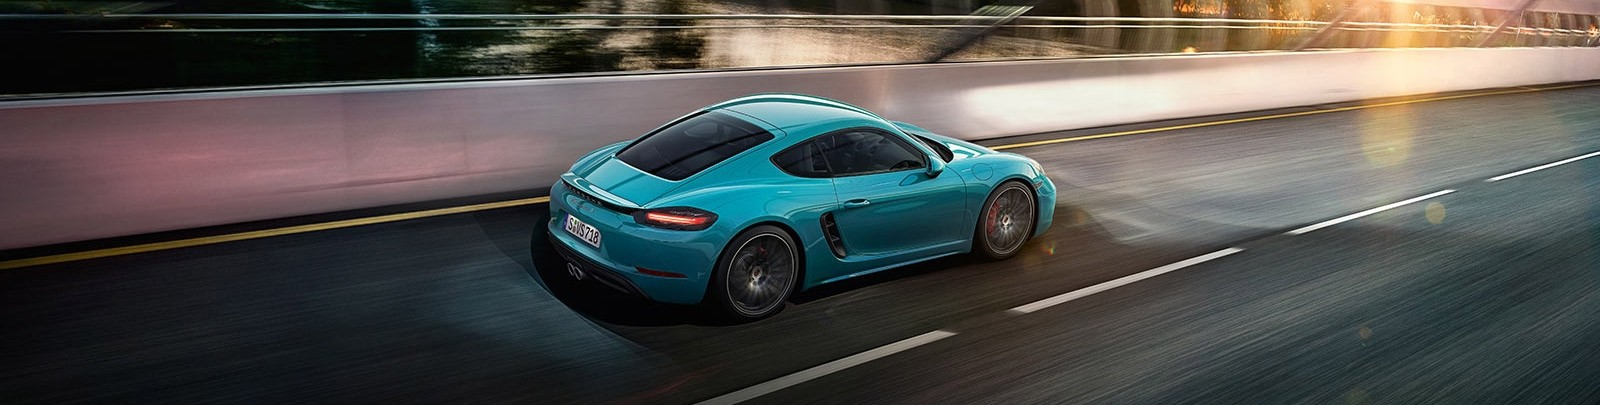 Porsche 718 Cayman Performance